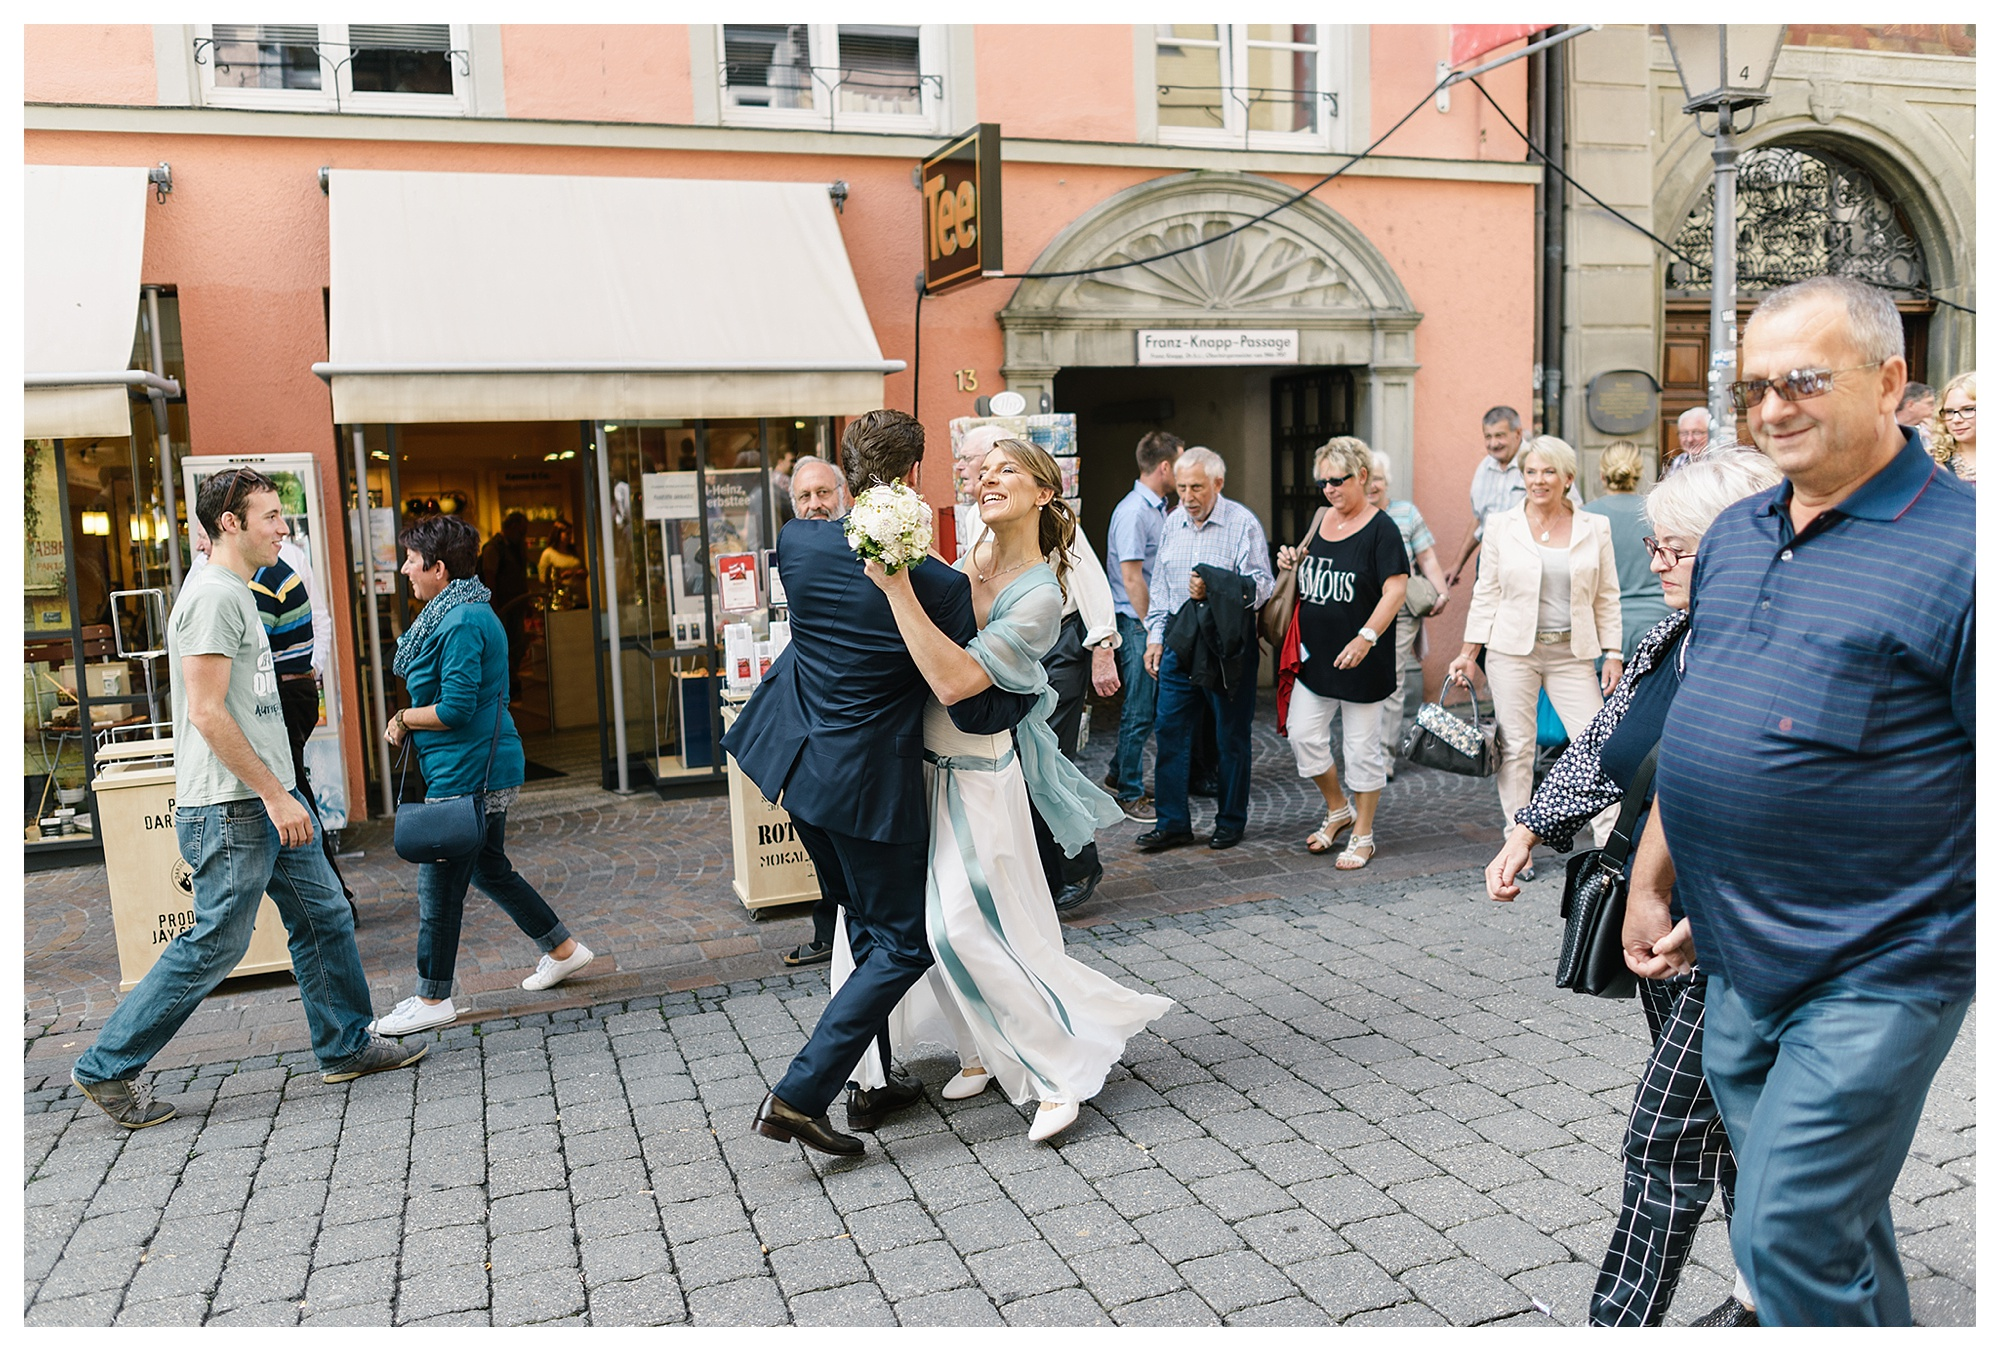 Fotograf Konstanz - Hochzeitsreportage Konstanz Raphael Nicole Elmar Feuerbacher Photography Hochzeit Portrait 17 - Wedding in Constance at Lake of Constance  - 50 -